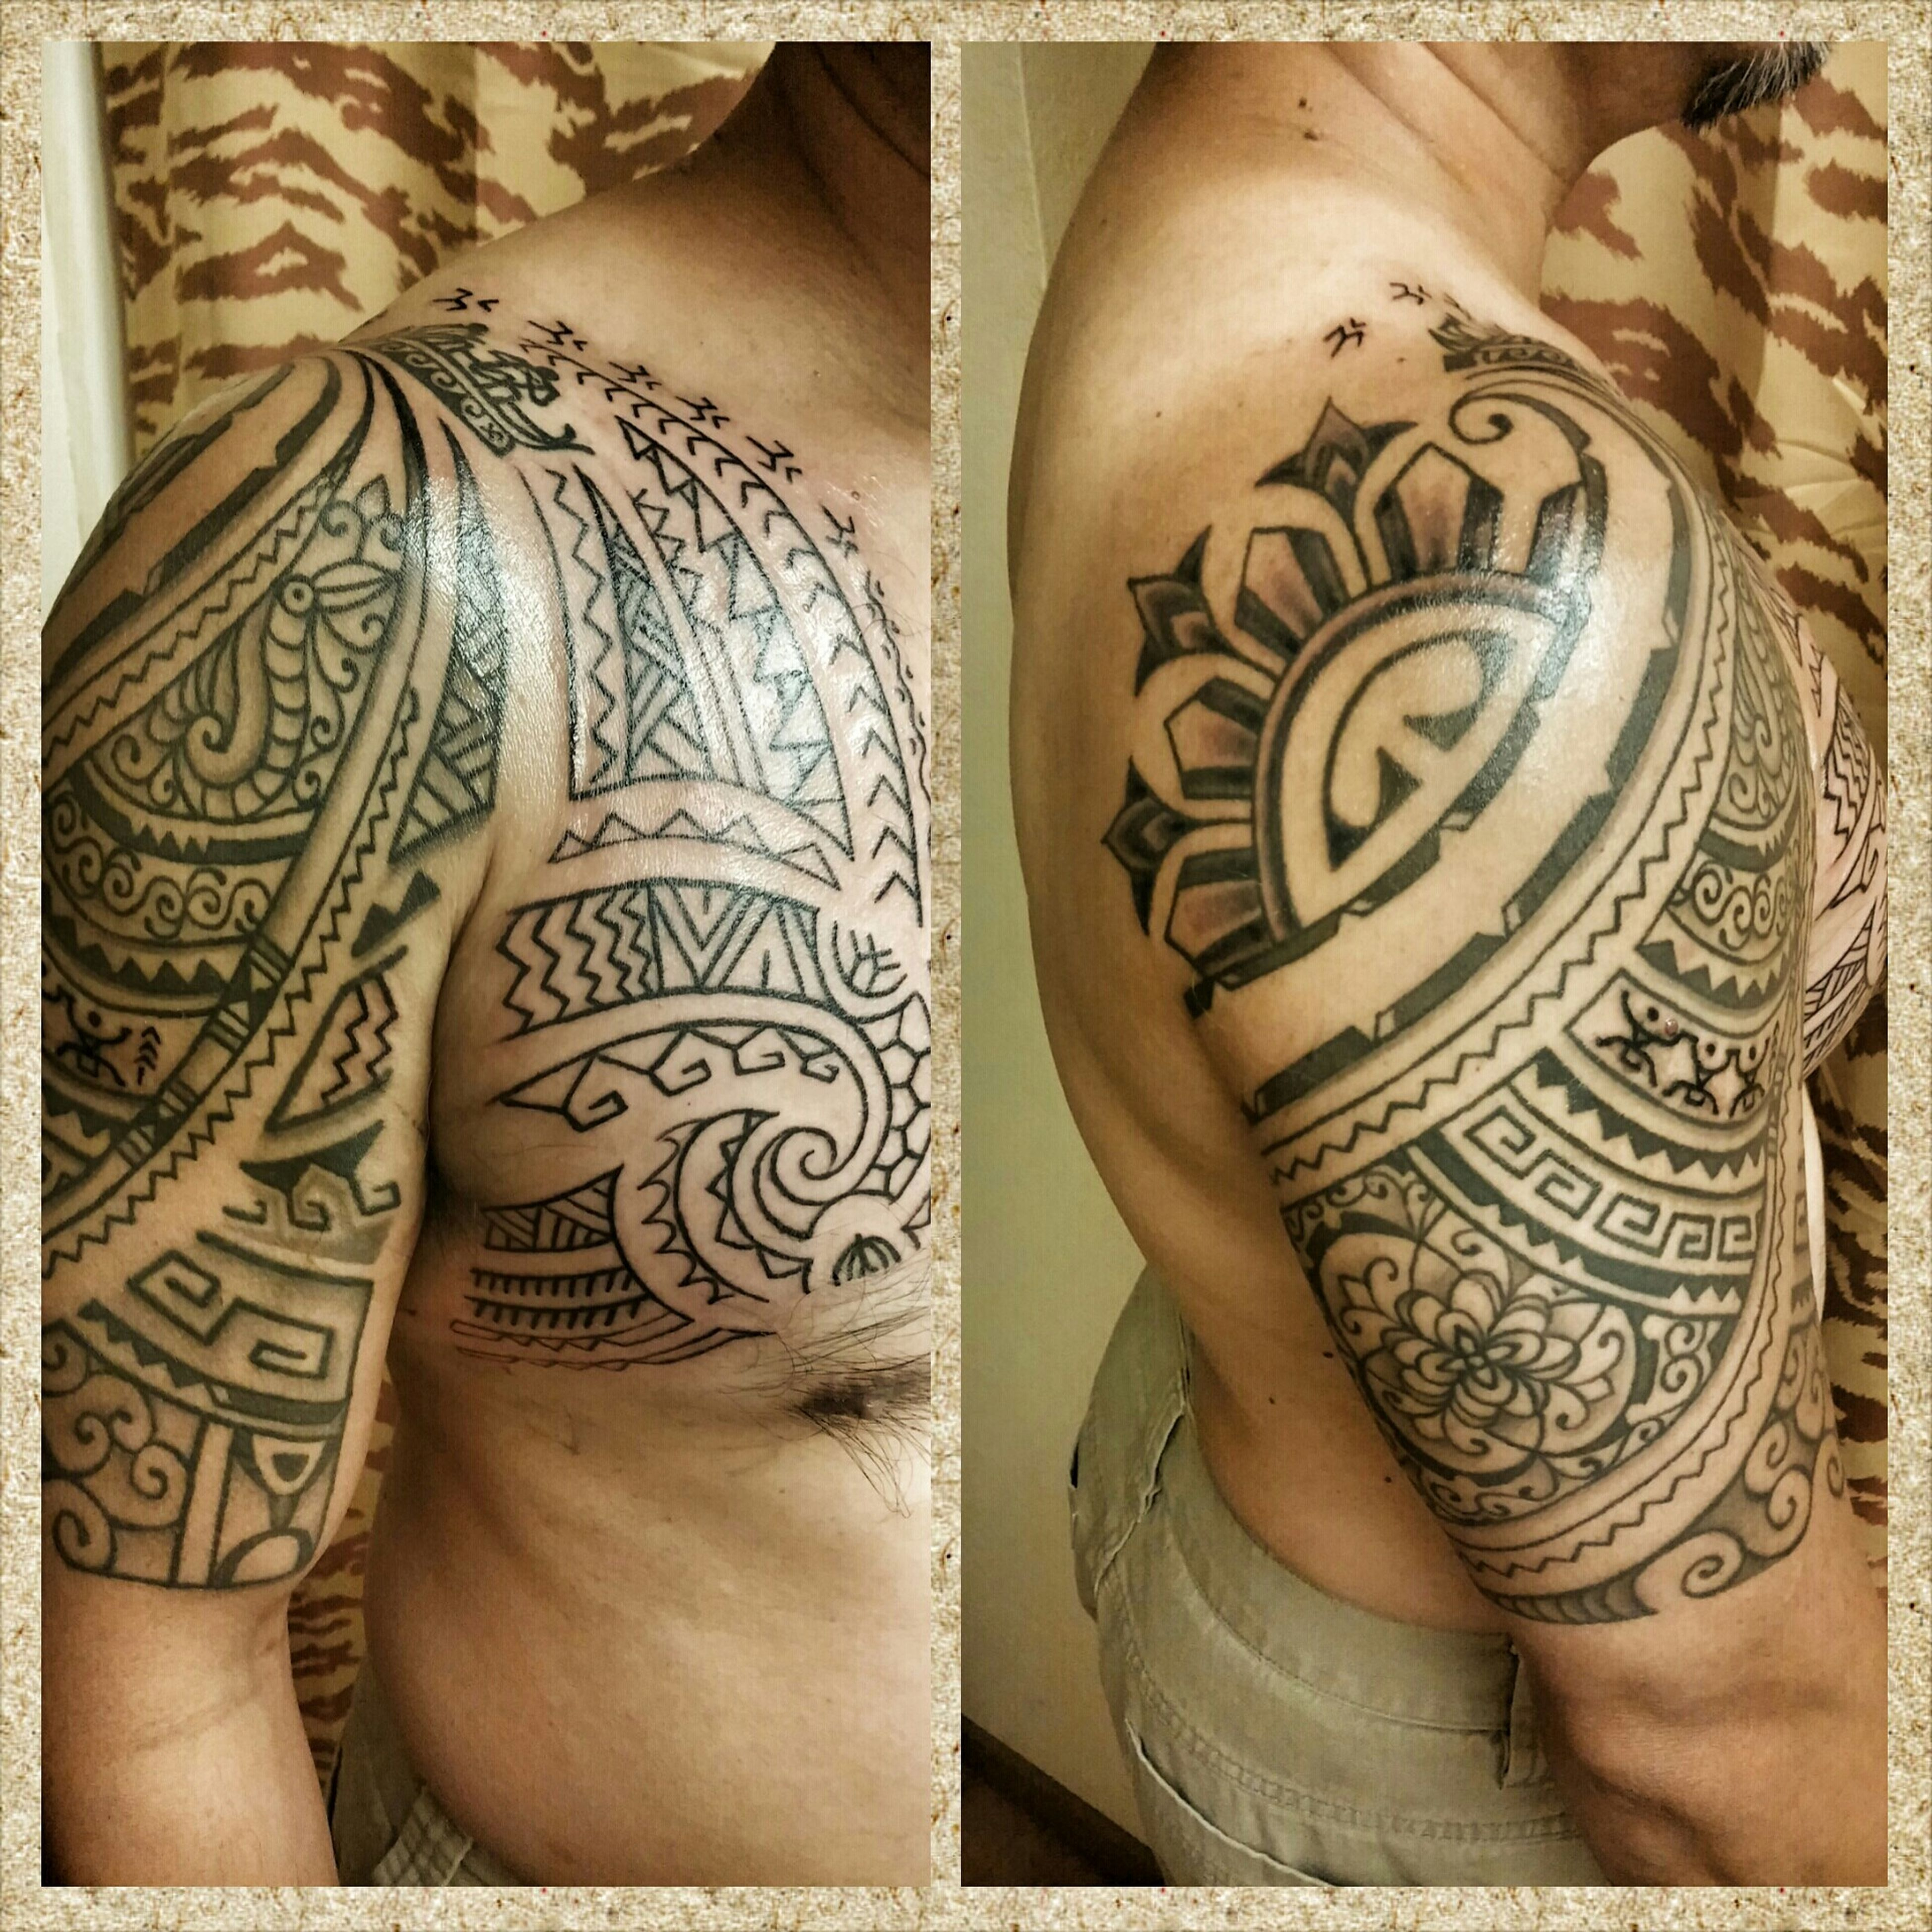 Designed by cofounder of Tatak ng Apat na Alon (Mark of The Four Waves) Tattoos Filipino Tribal Tattoo Filipino Tribal Tattoo Tattoo Filipino Tattoo Tribaltattoo